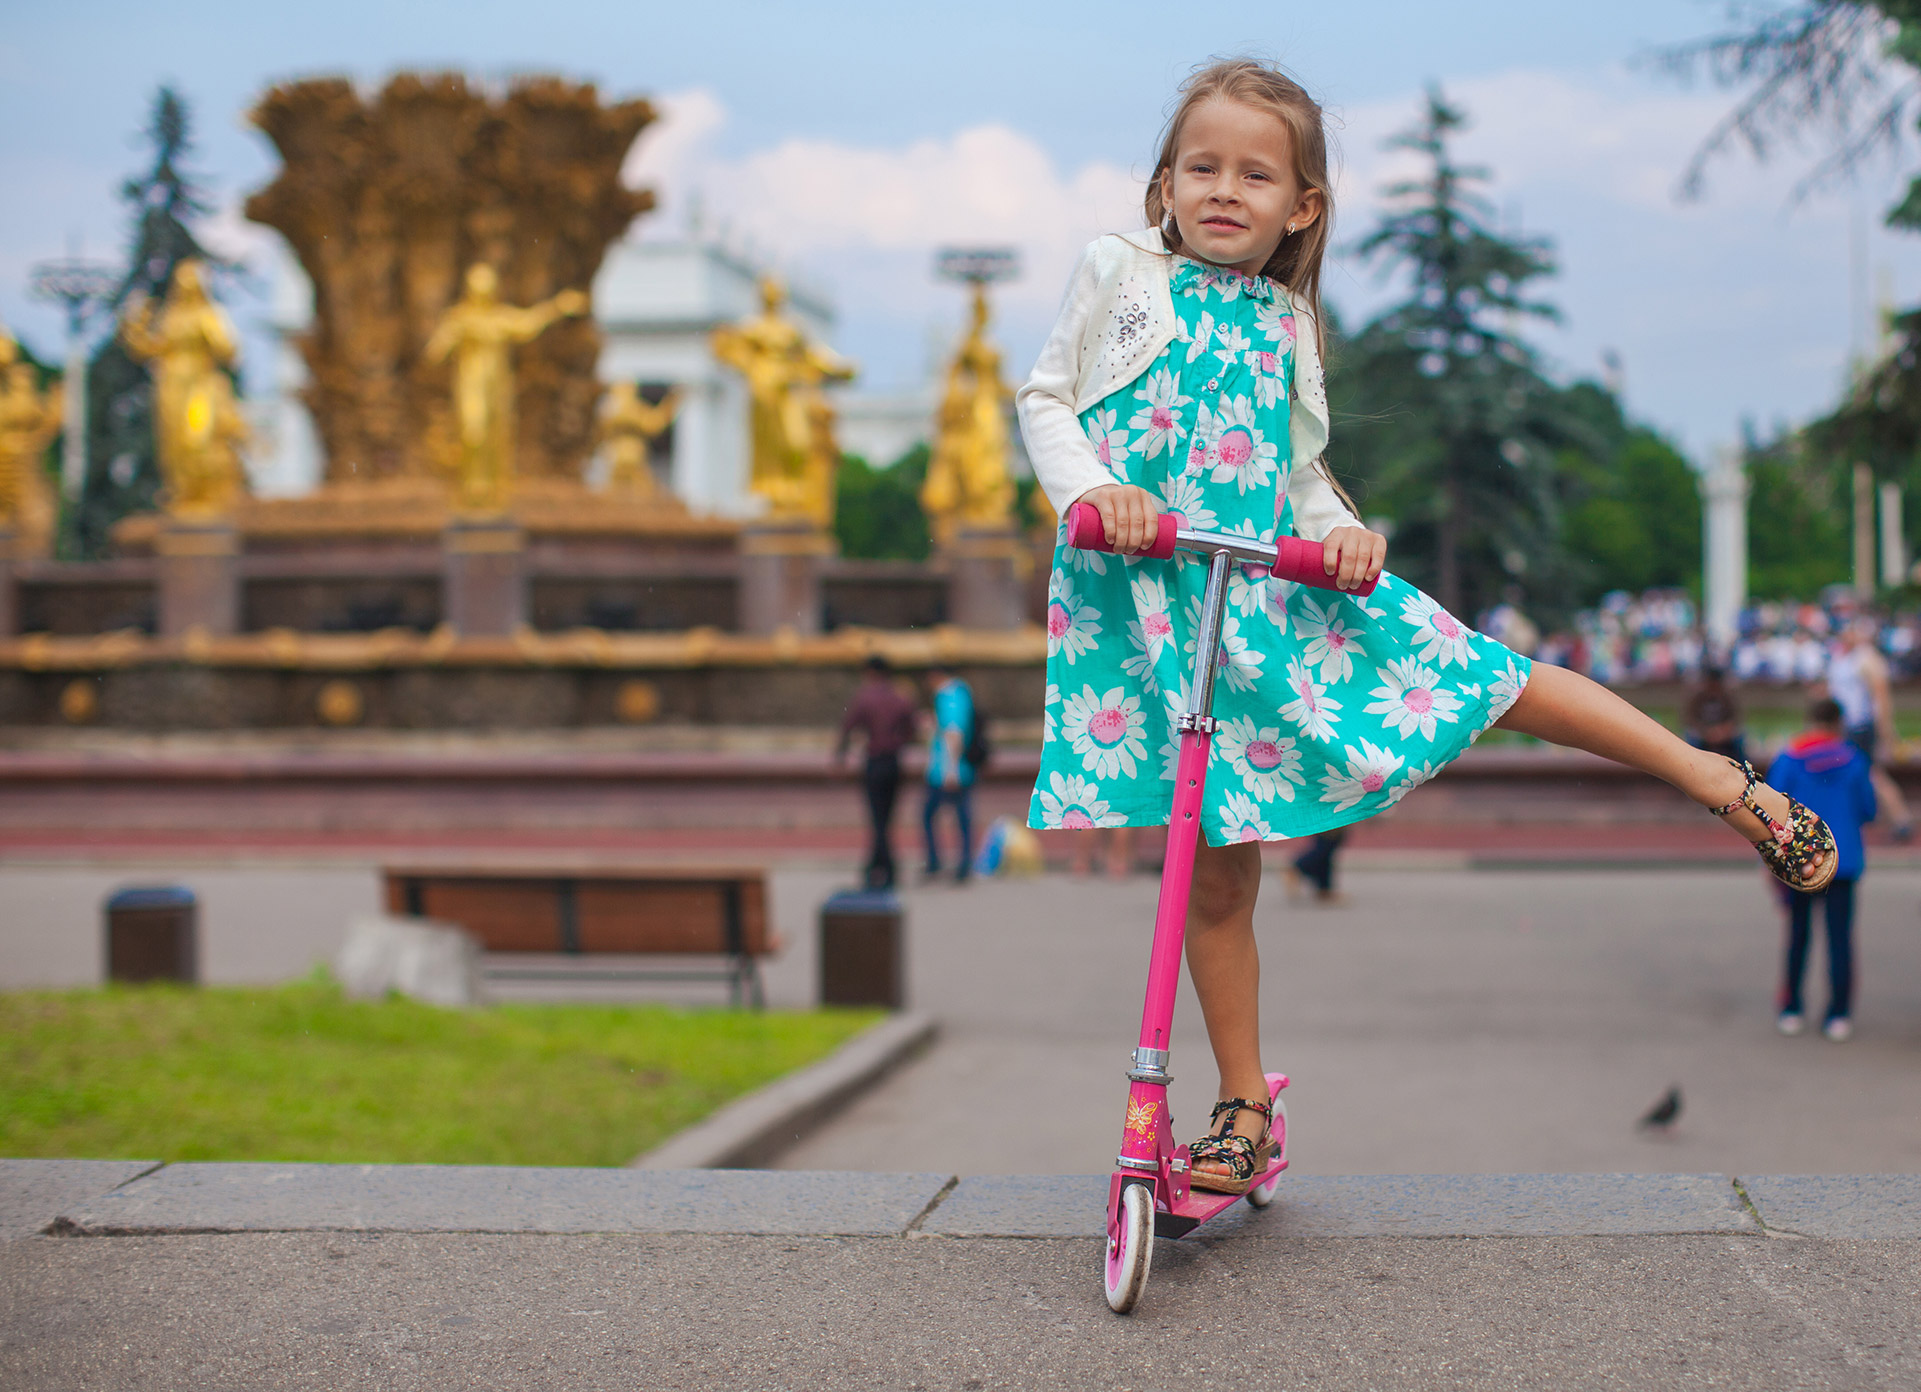 Children need at least 60 minutes of exercise per day